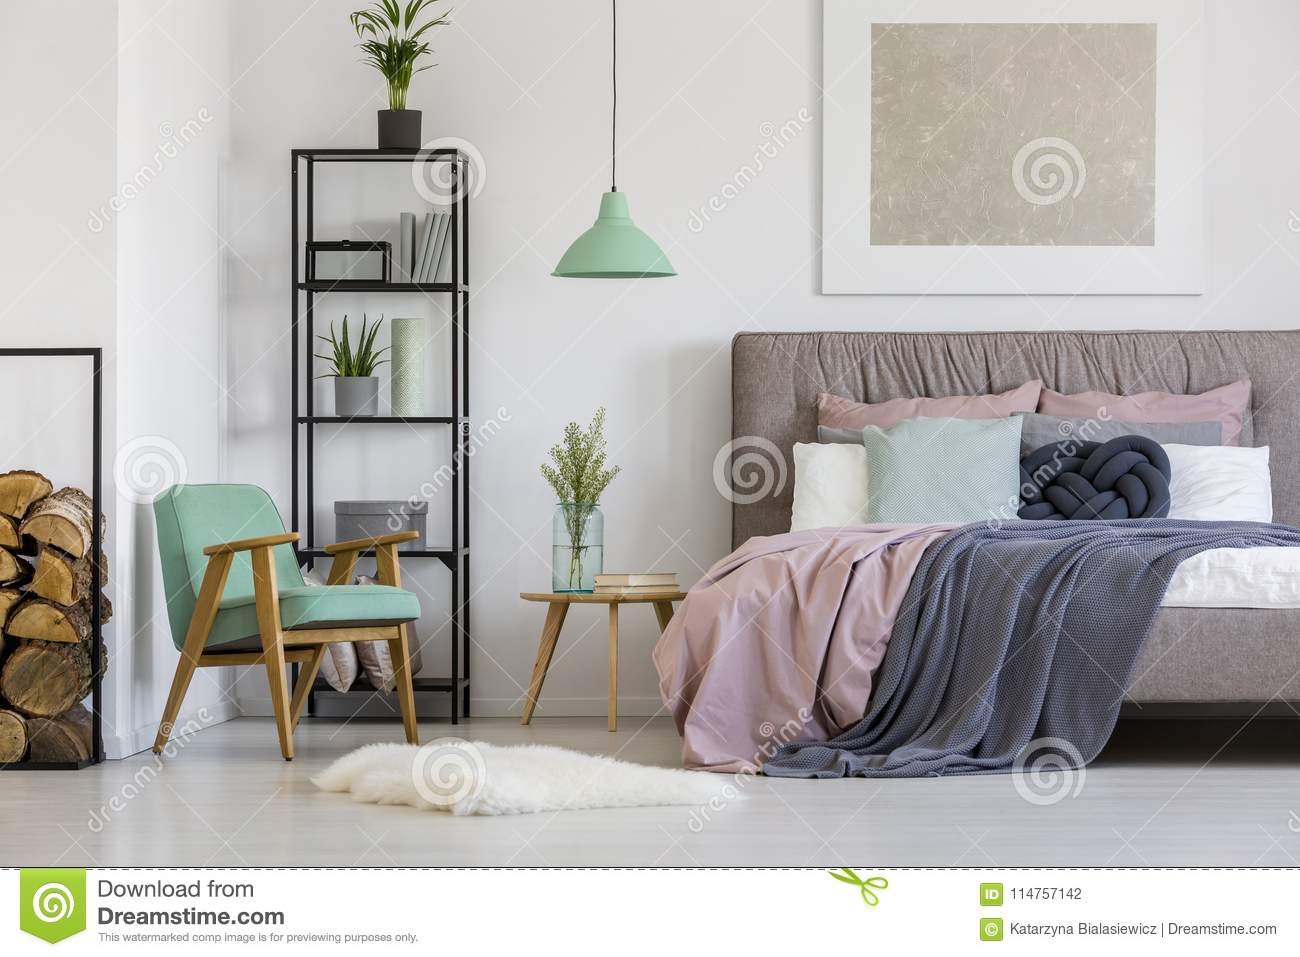 Feminine Bedroom With Vintage Furniture Stock Photo - Image of ...